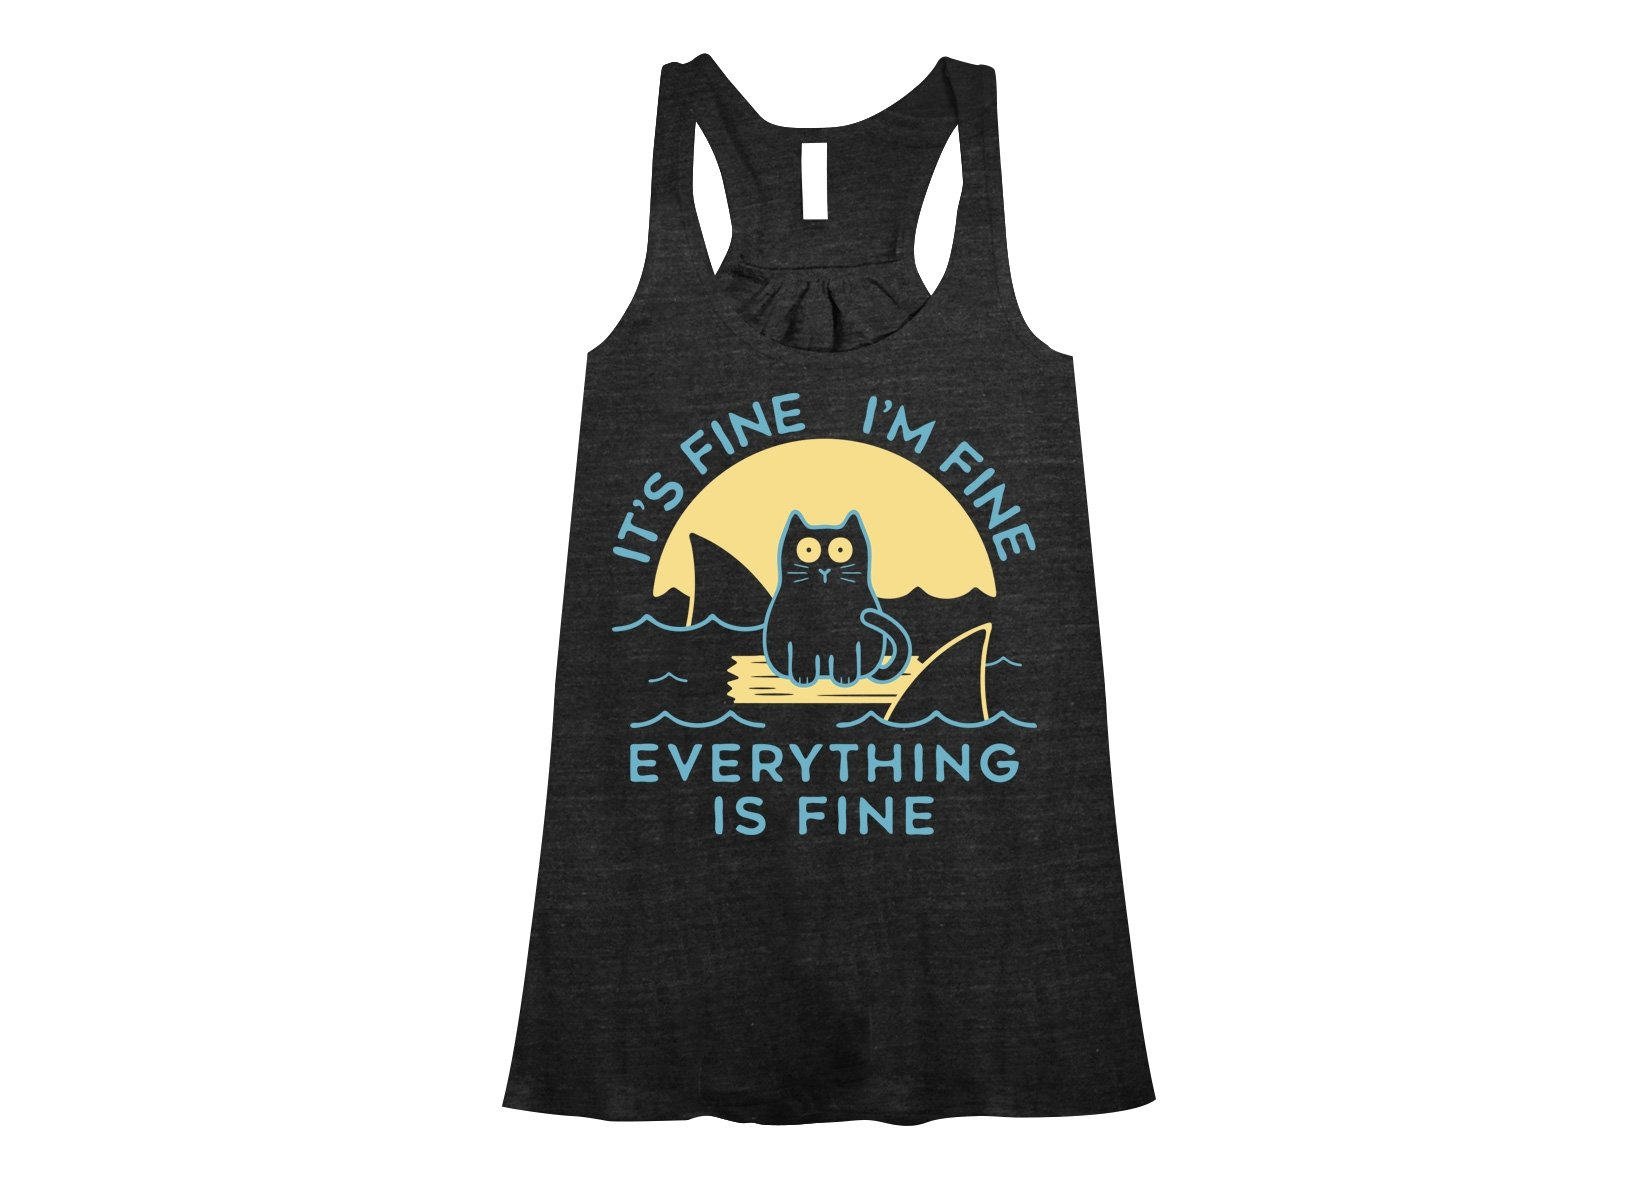 It's Fine I'm Fine Everything Is Fine on Womens Tanks T-Shirt